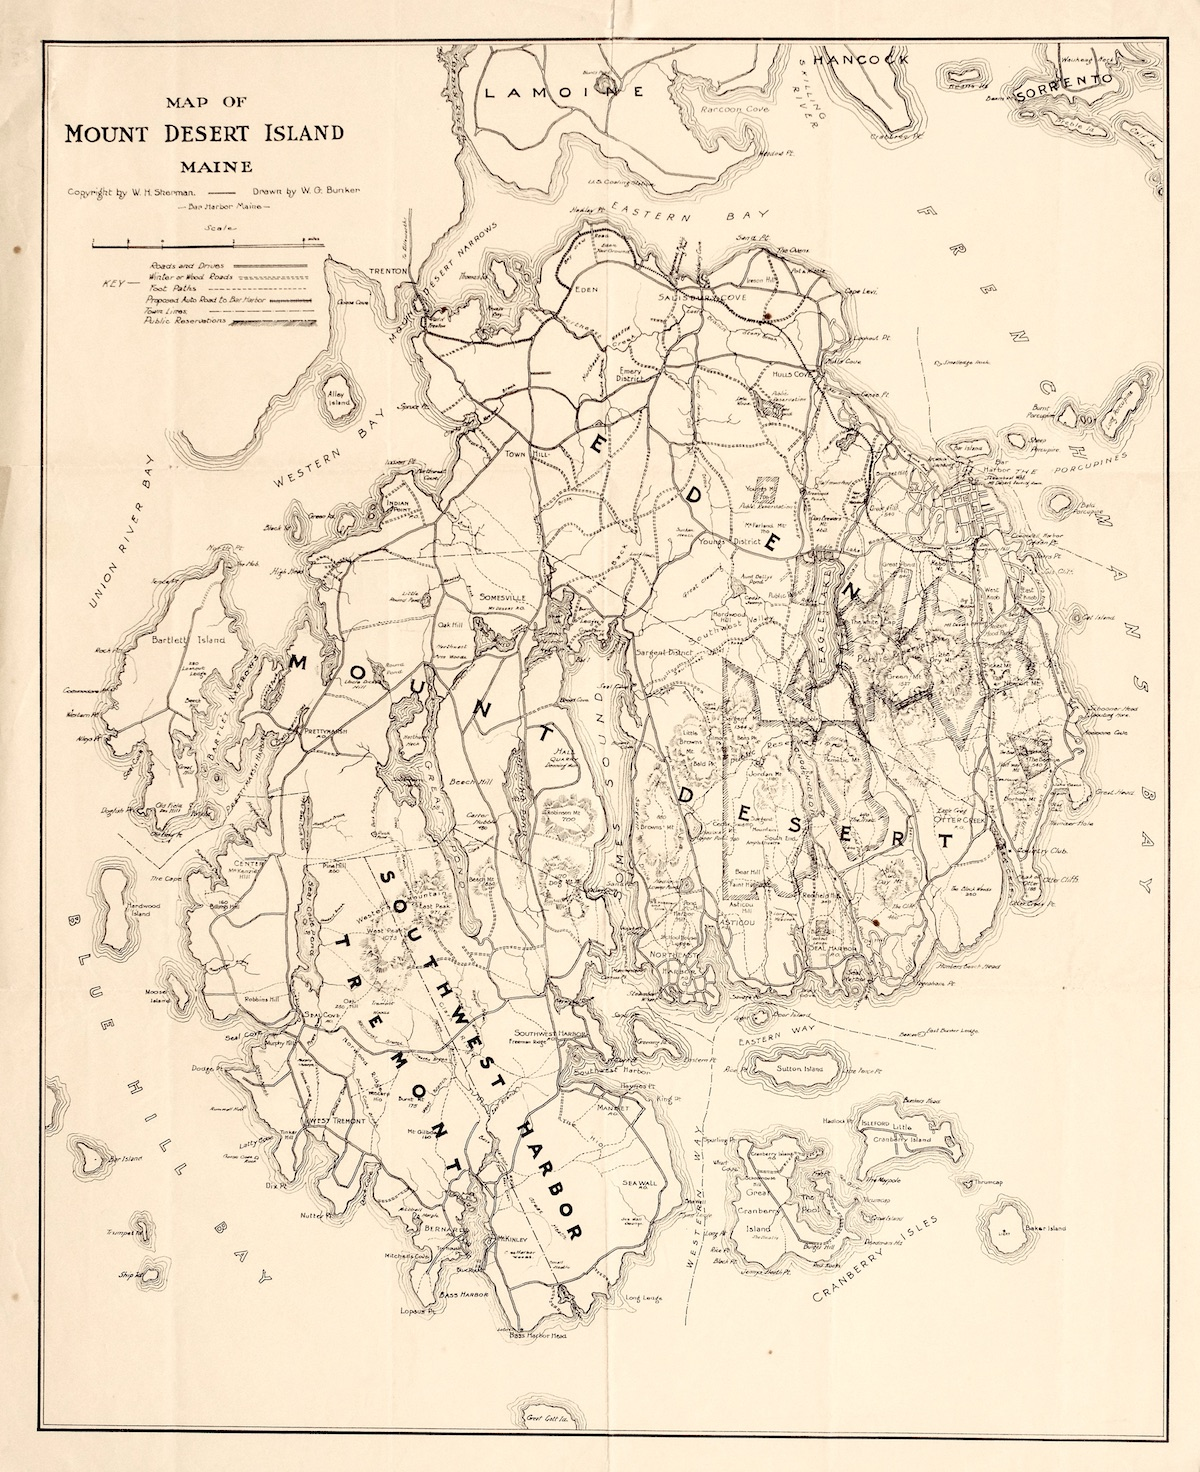 Road and Path Map of Mount Desert Island